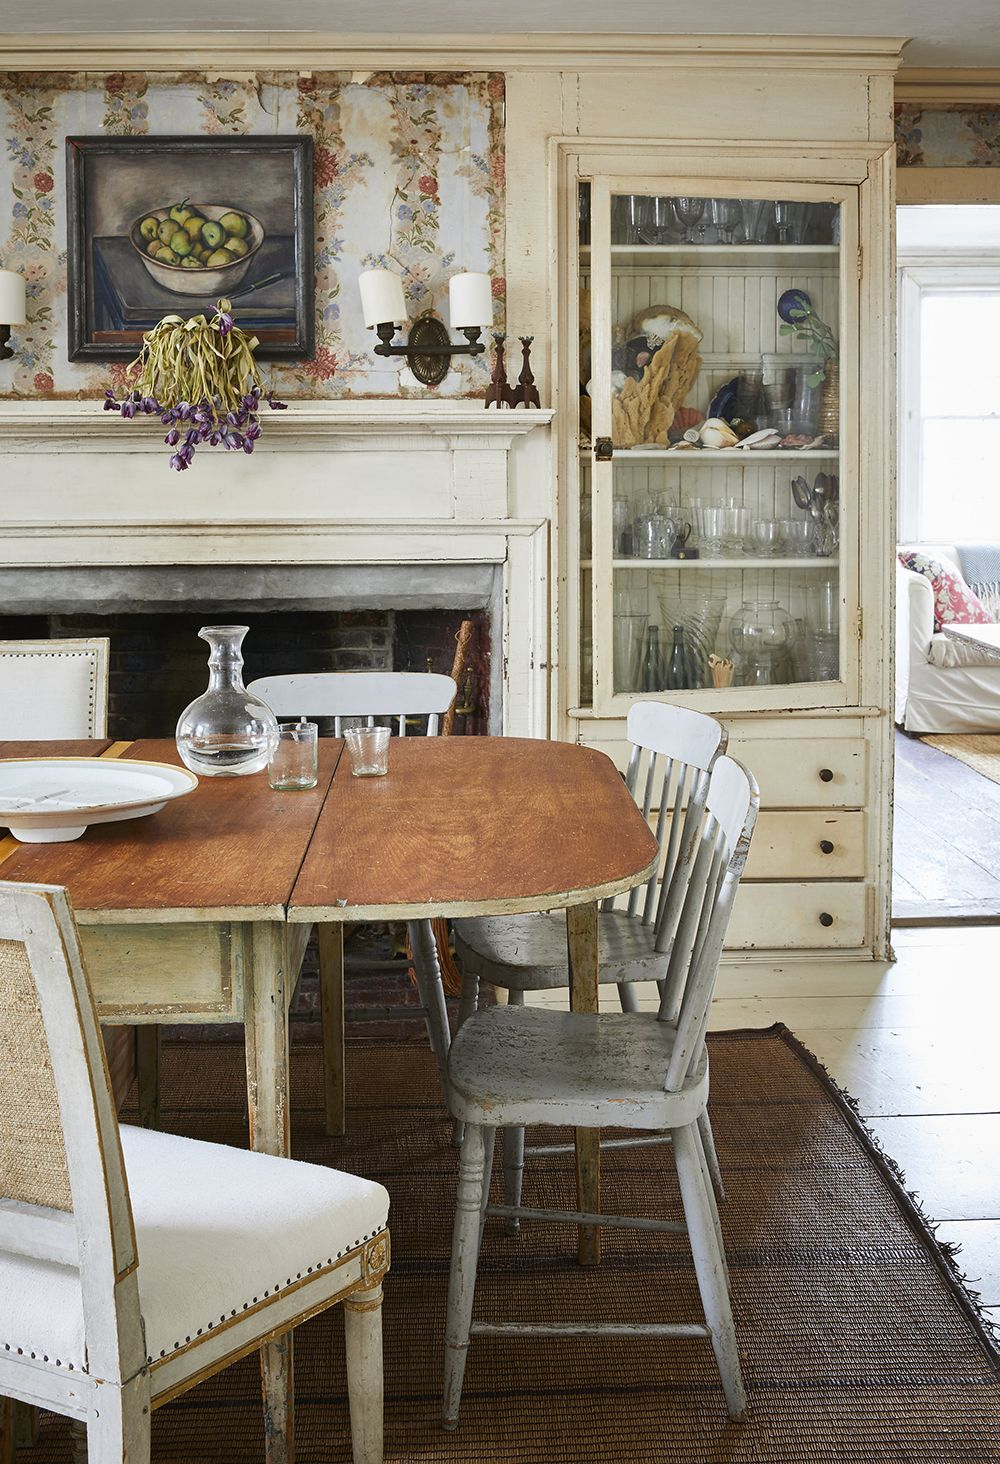 Country interior farmhouse beautiful interiors decoration old houses kitchen dining also john derian   new york city abode is as charming and eclectic his rh pinterest